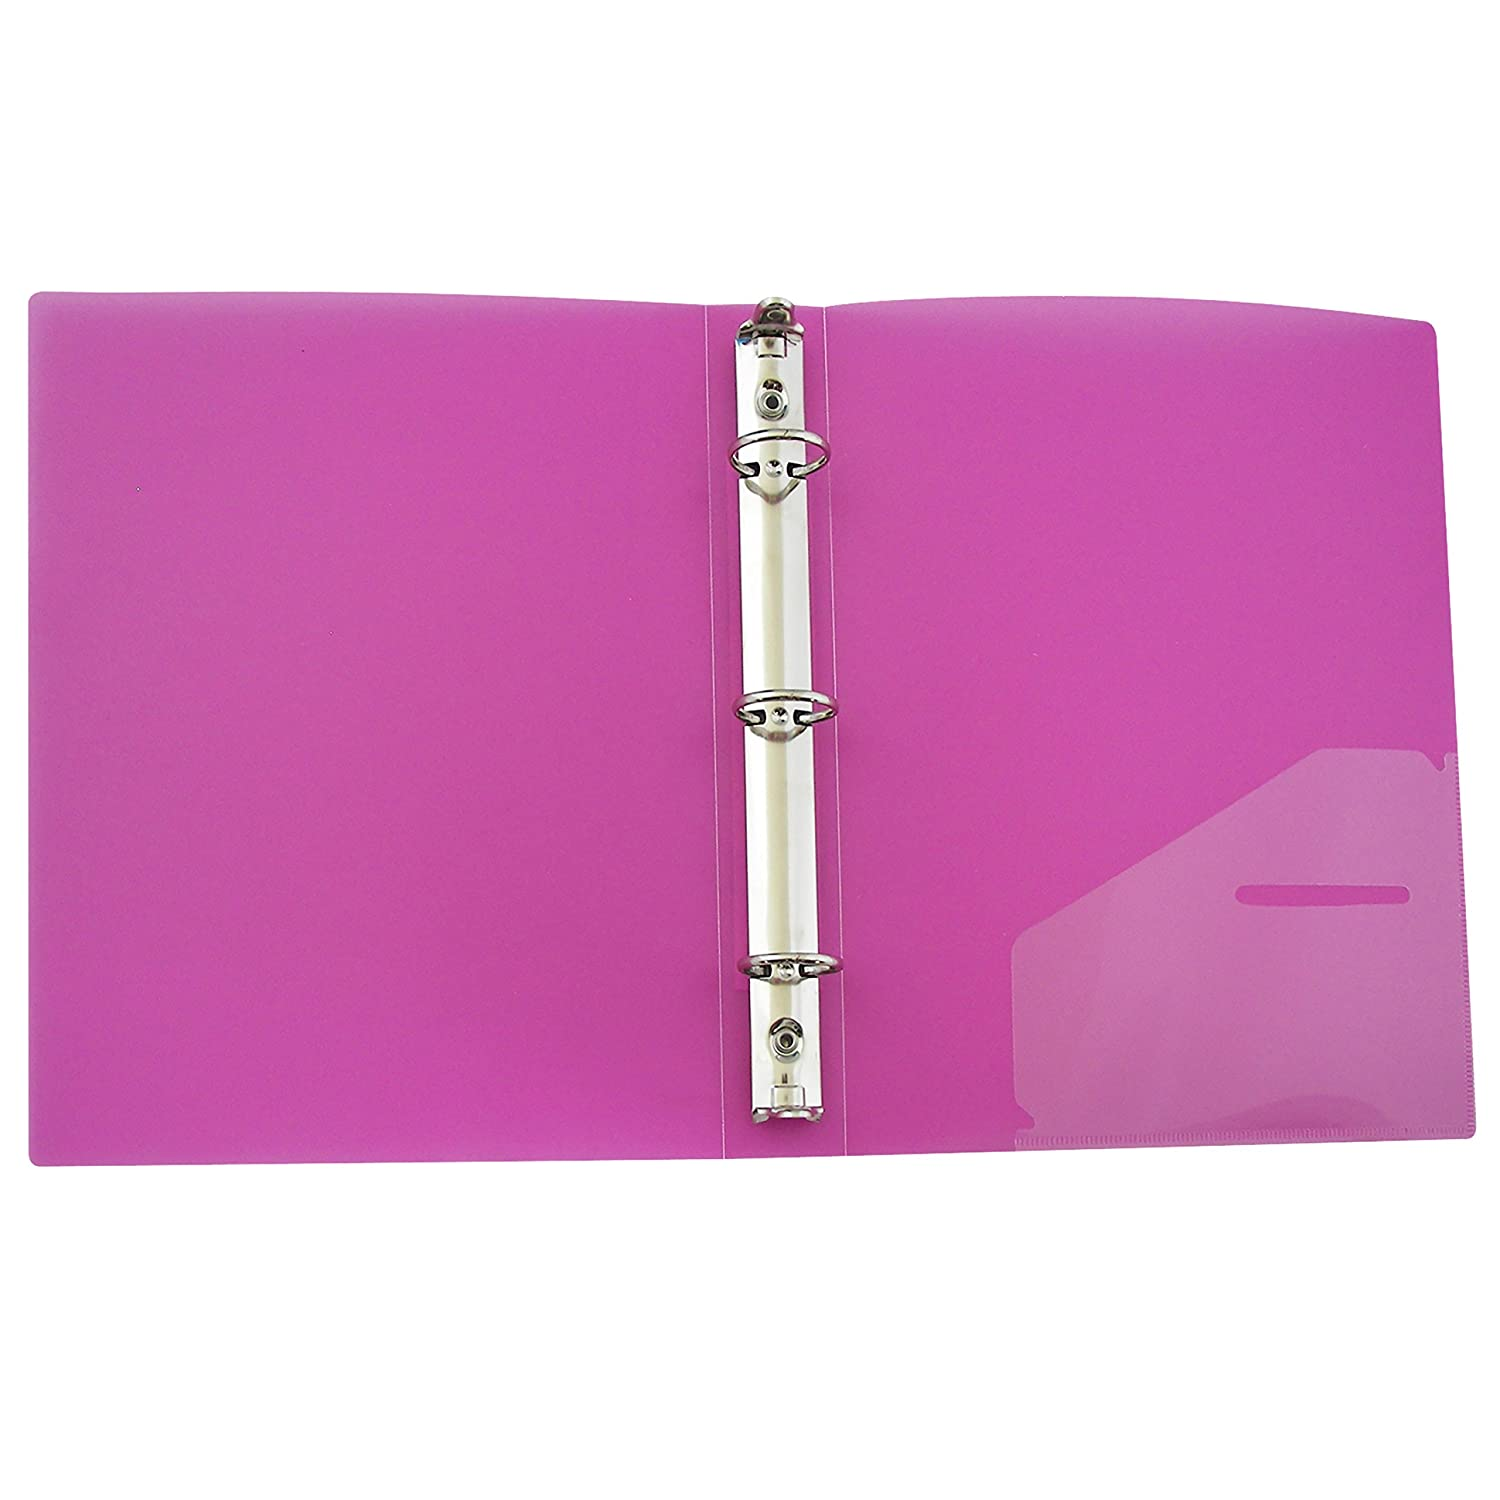 C-Line Mini Size 5-Tab Poly Index Dividers, for 5.5 x 8.5, 6 x 9 and 8.5 x 11 Binders, Assorted Colors, One 5-Tab Set (03730) C-Line Products Inc.